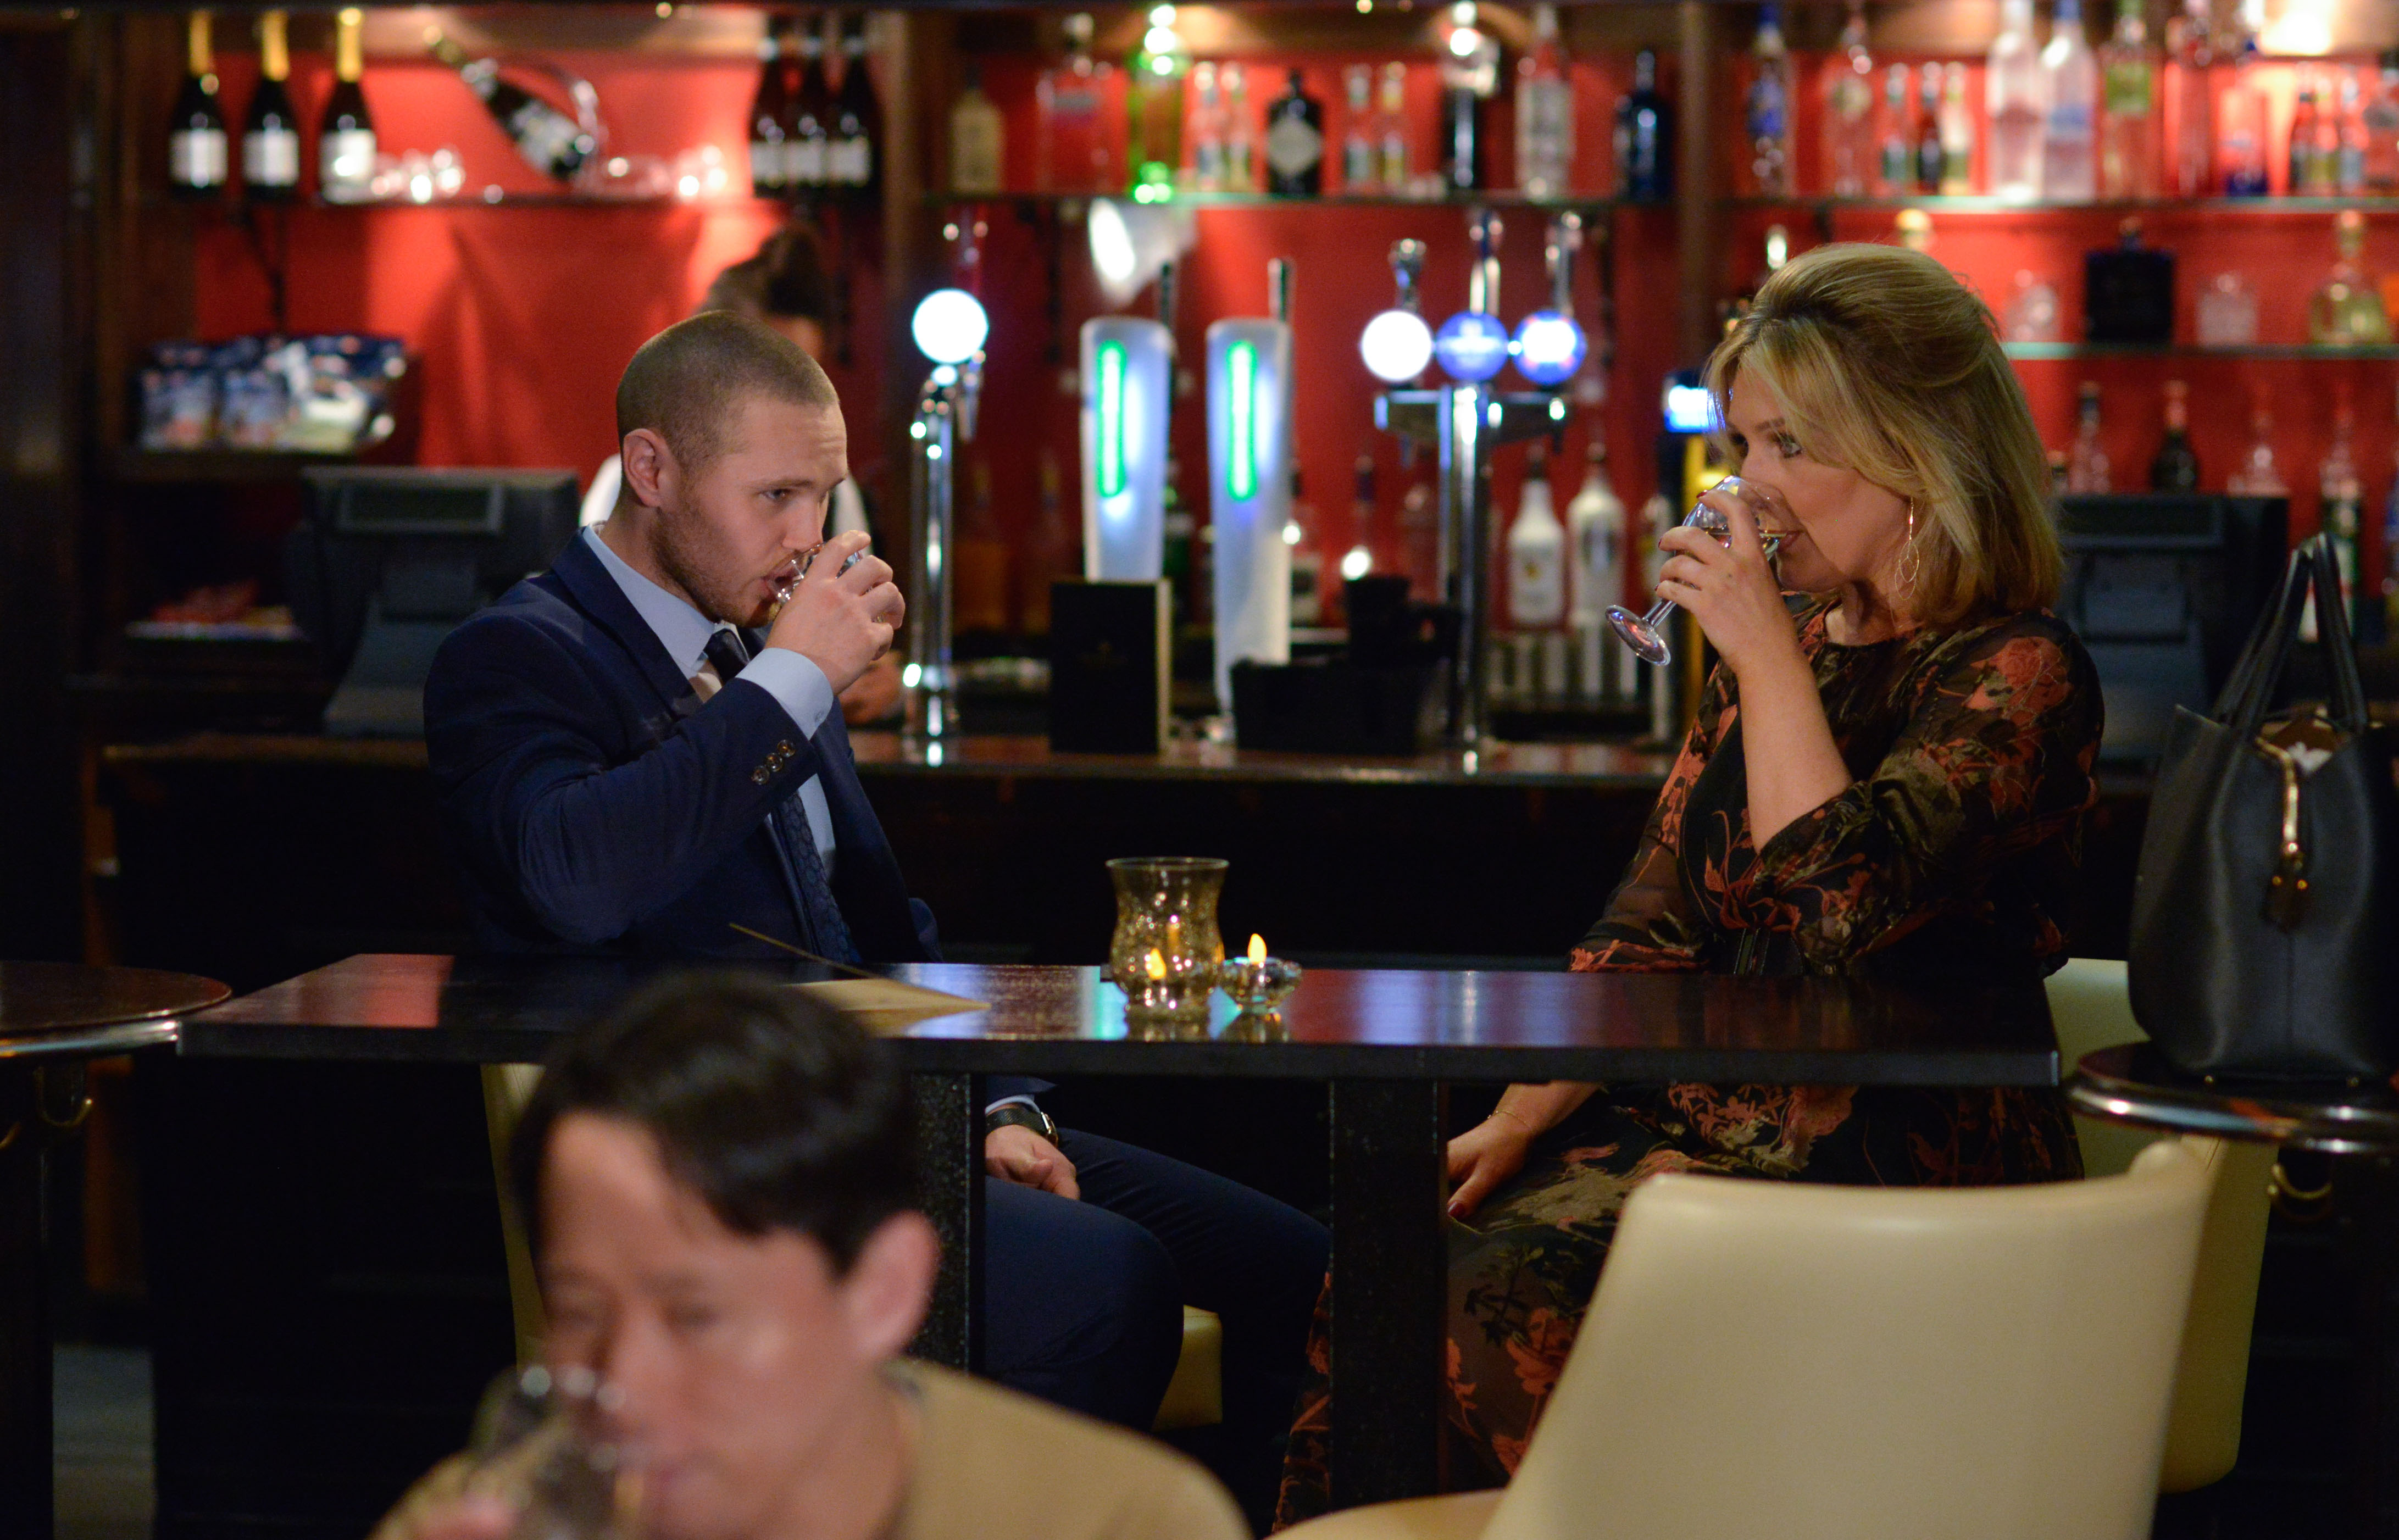 14184261-high_res-eastenders-october-december-2017